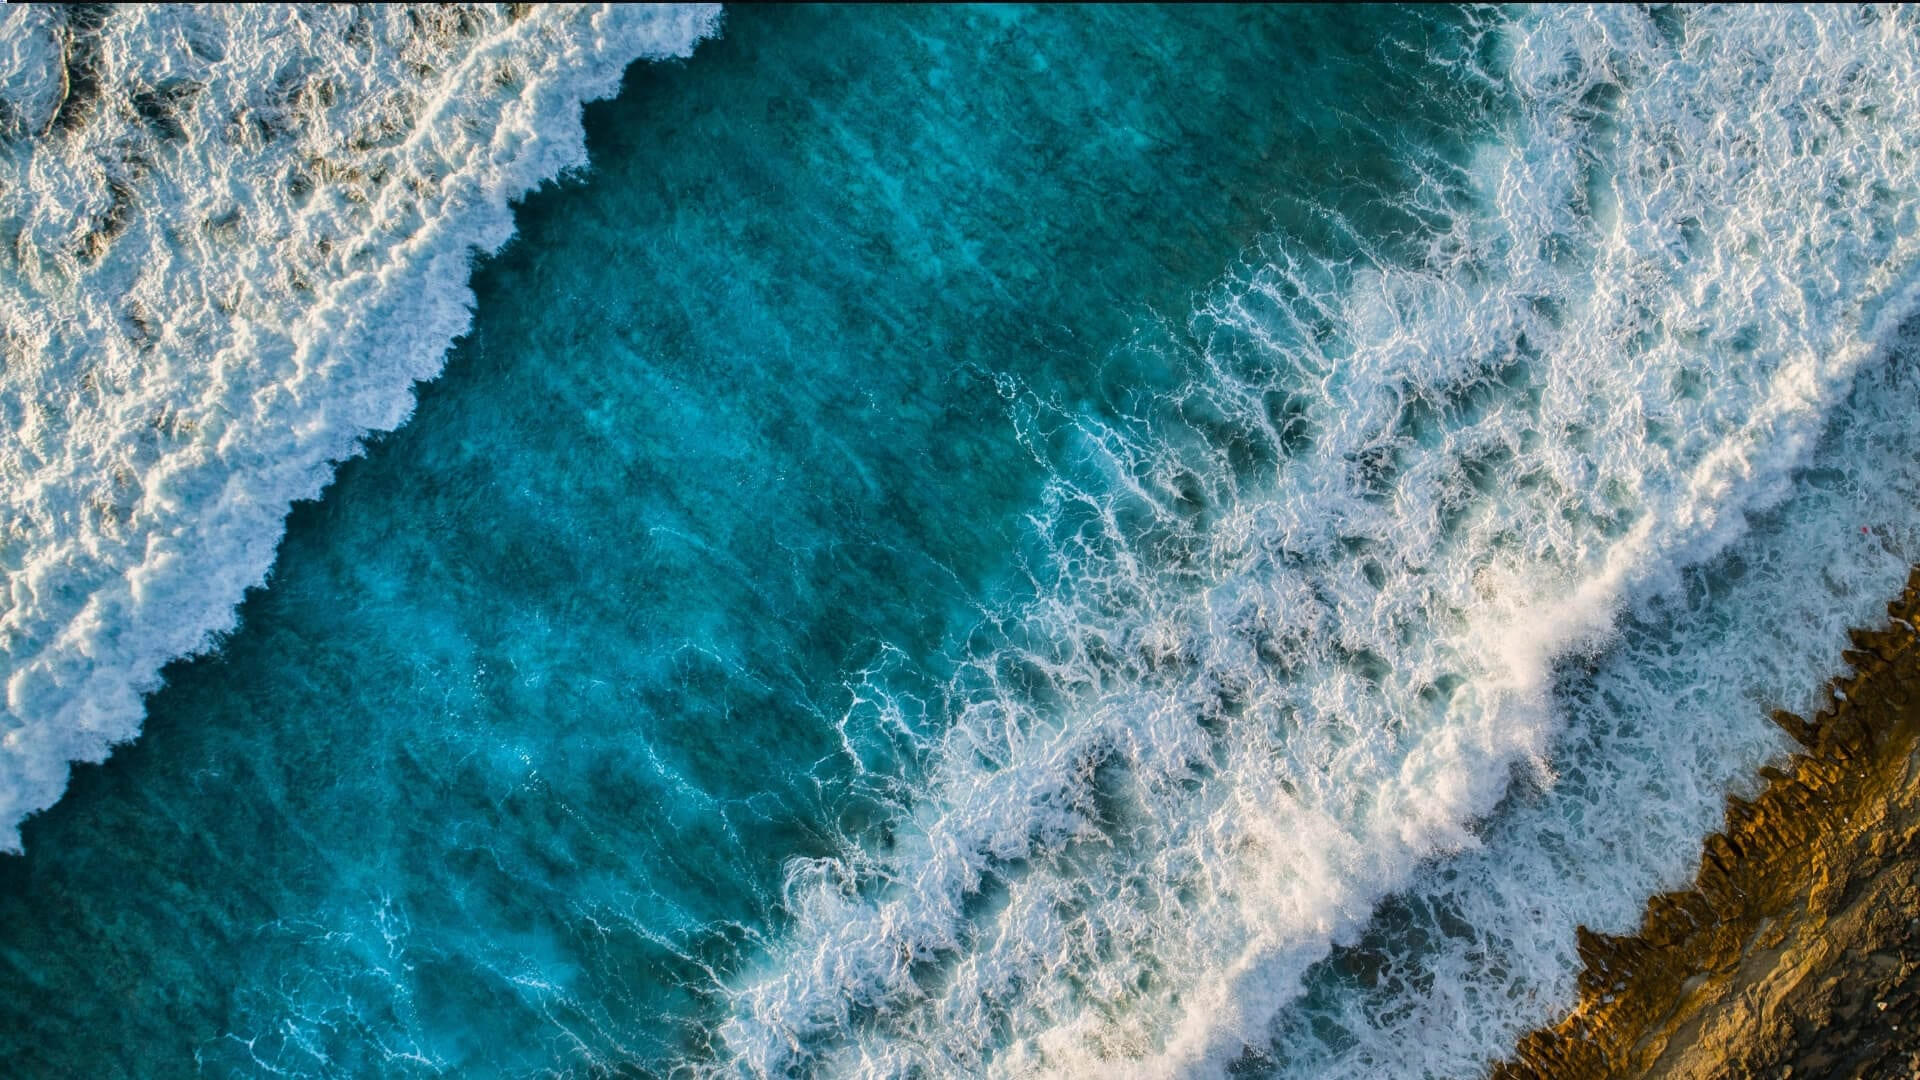 Waves in a bright blue ocean are washing ashore in Asia.